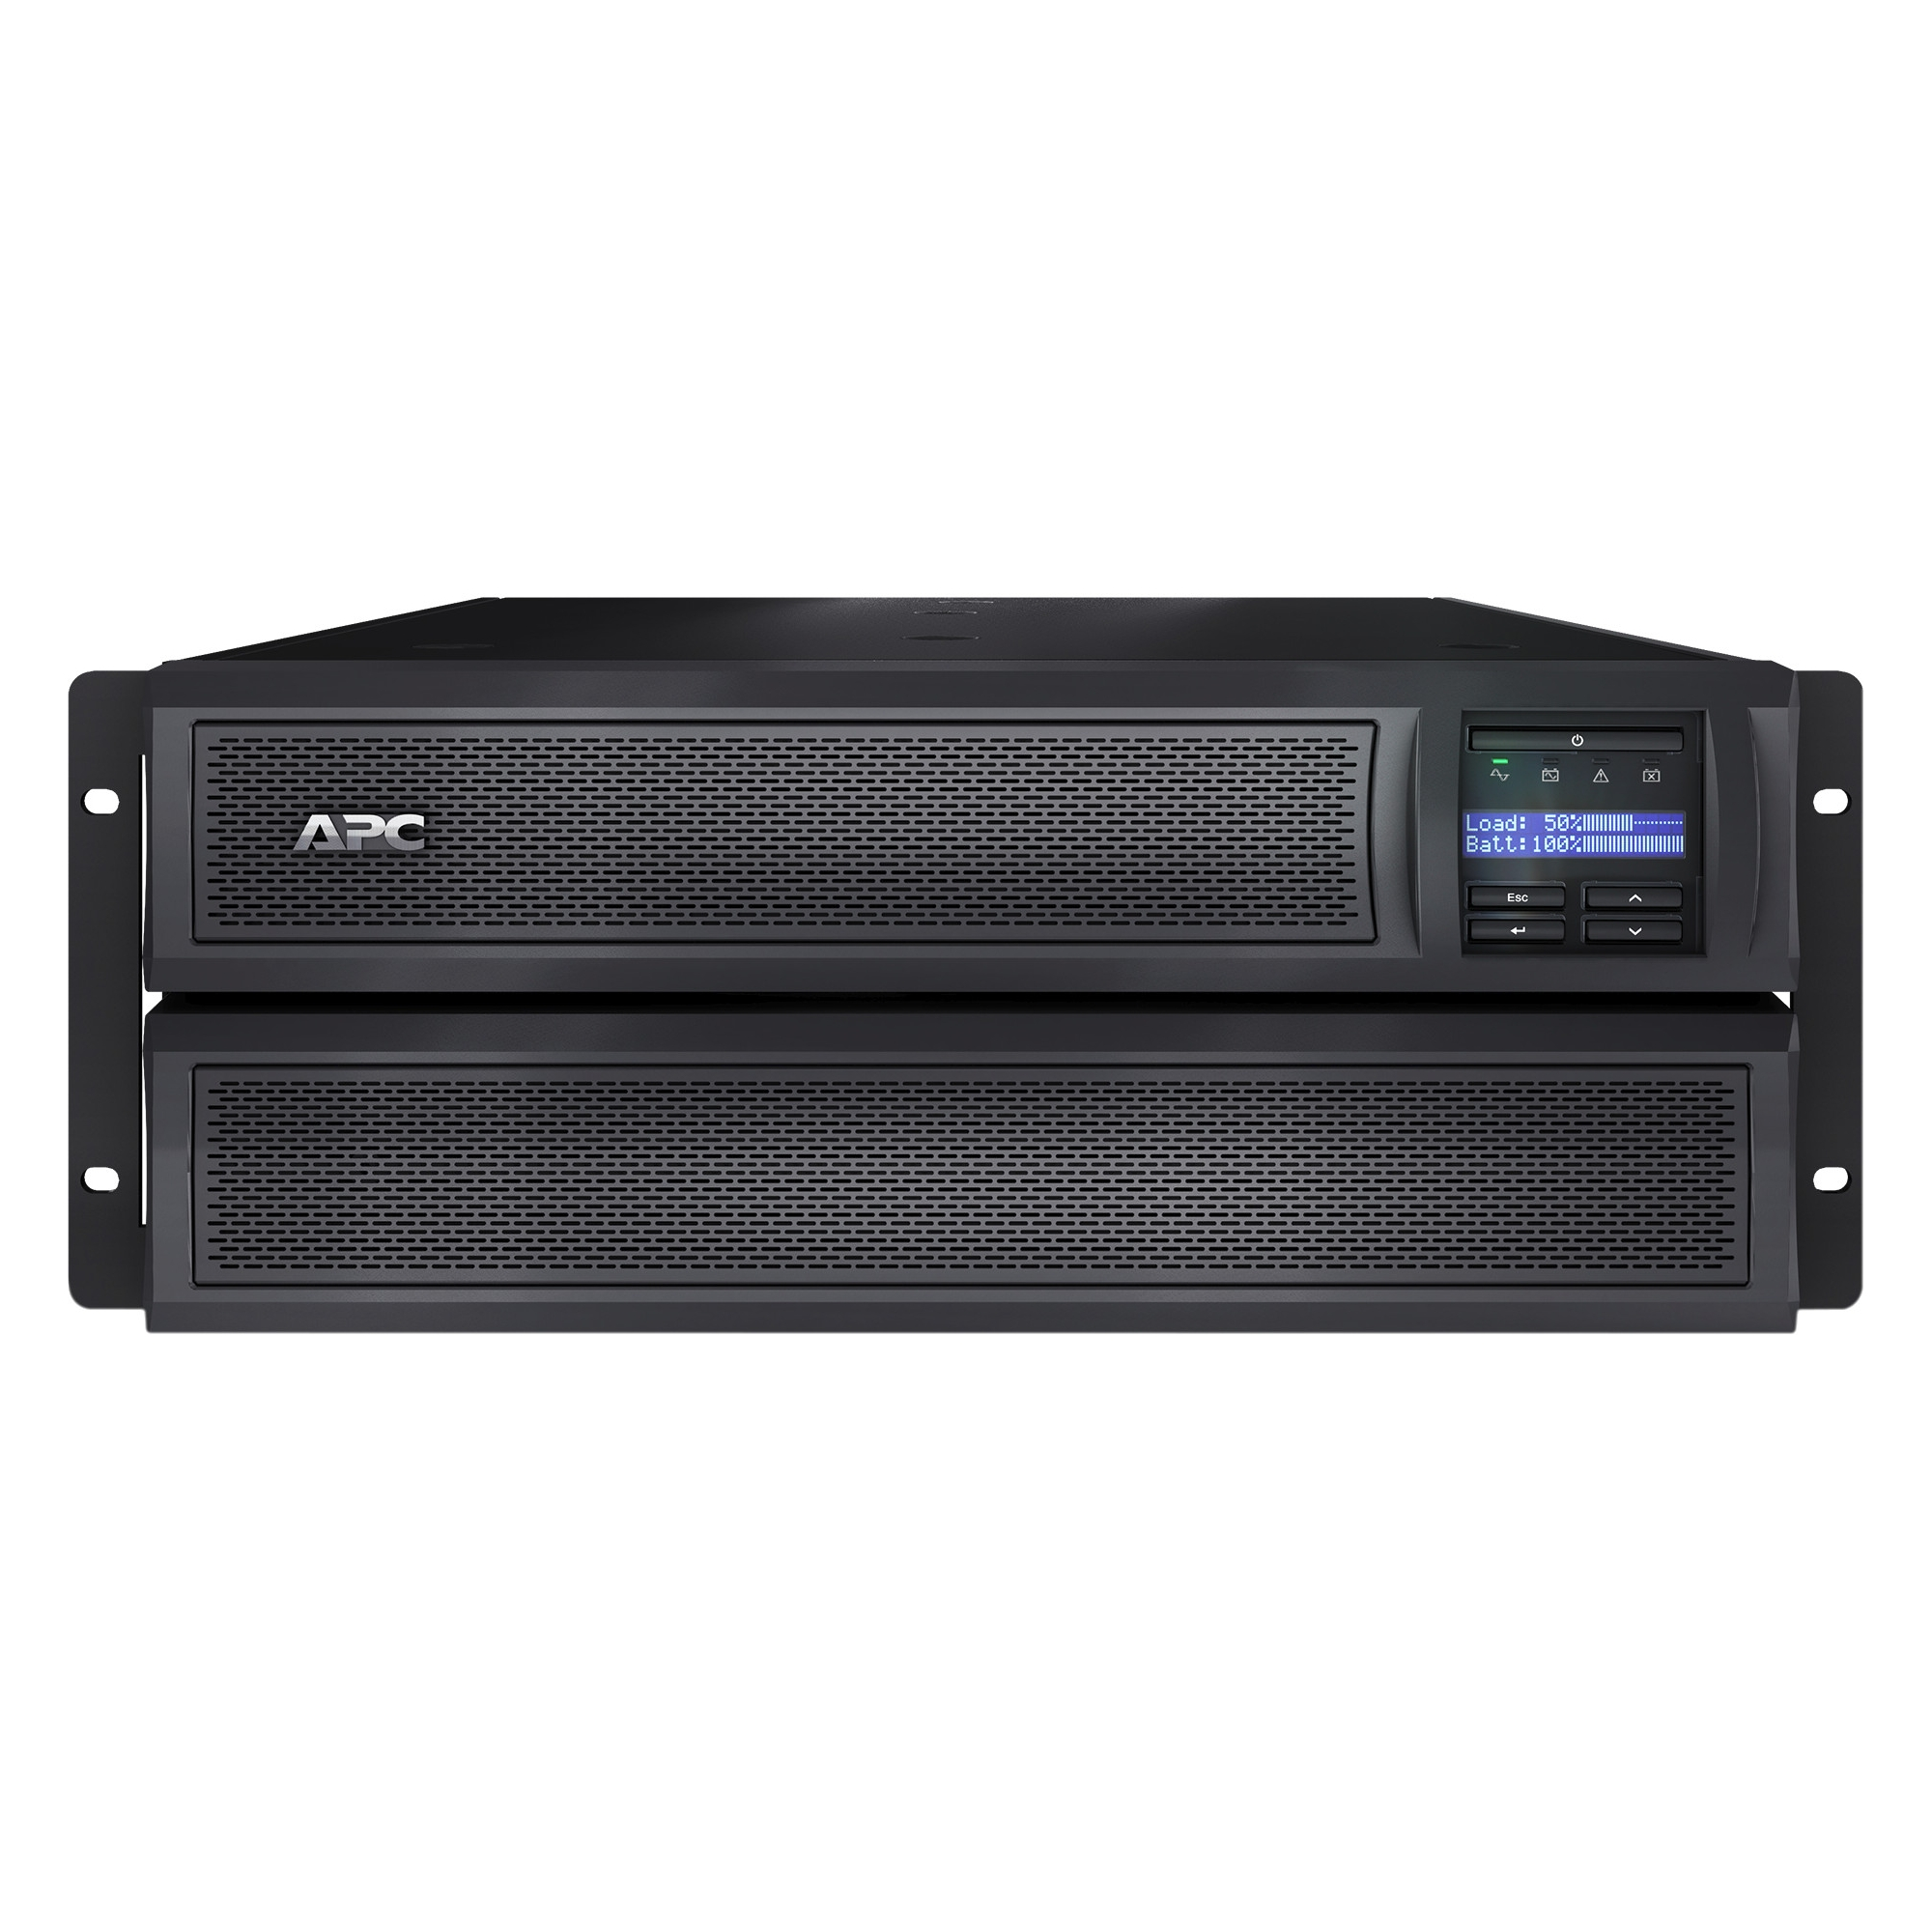 Smart-UPS X 3000 Rack/Tower LCD - UPS (rack-mountable / external) - AC 120 V - 2700 Watt - 3000 VA - Ethernet 10/100 RS-232 USB - output connectors: 10 - 2U - Canada United States - black - with APC UPS Network Management Card AP9631 - for P/N: SUA2200